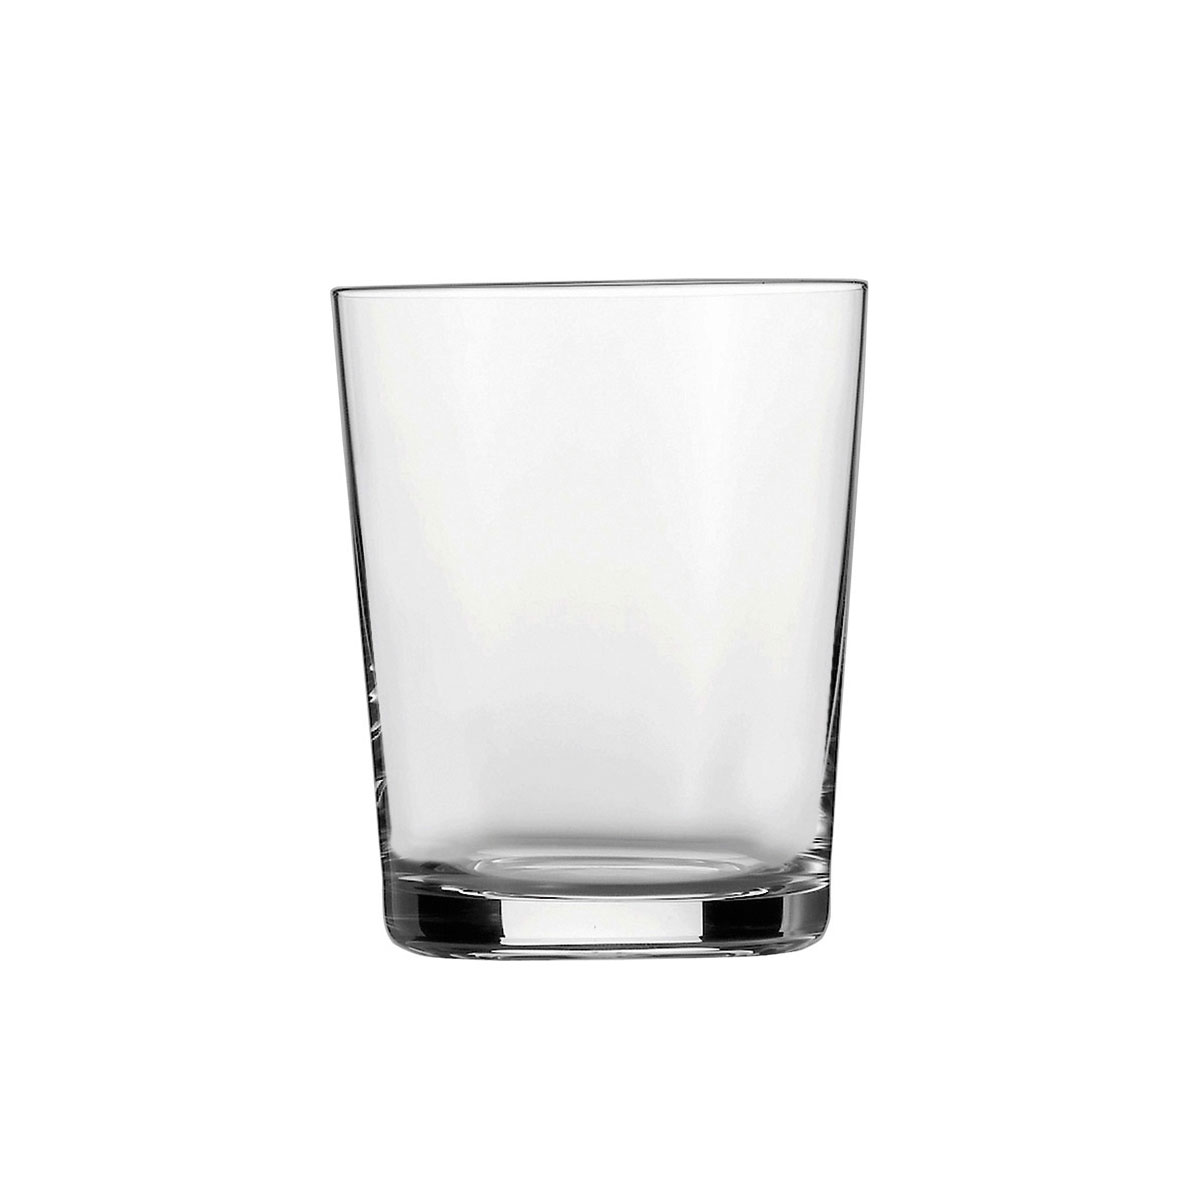 Schott Zwiesel Tritan Crystal, Charles Schumann Side Water Glass, Single